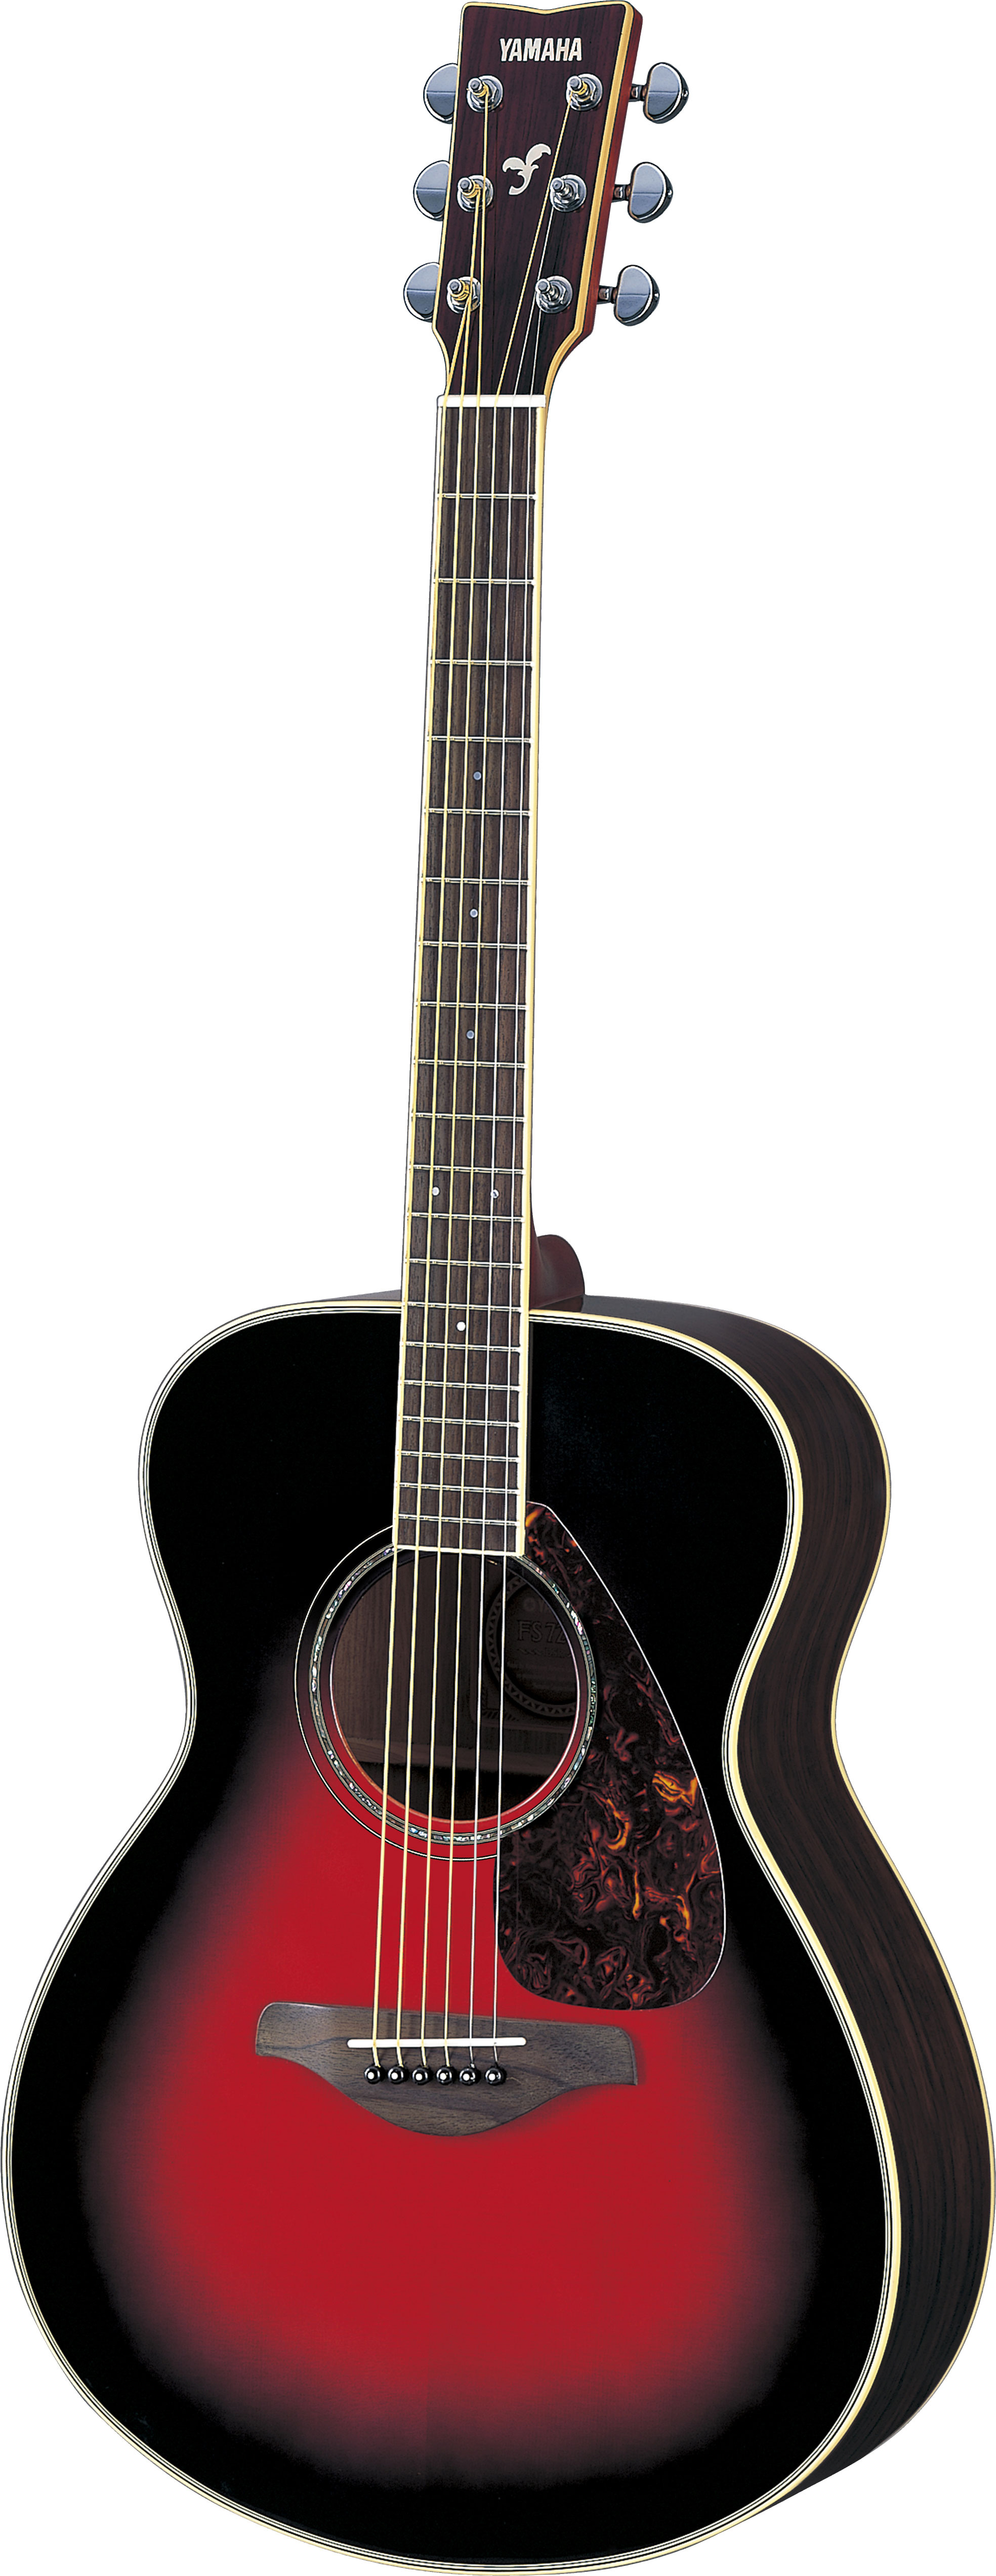 Yamaha Acoustic Classical Guitar w/ Solid Sitka Spruce Top, Steel Strings, Hand Sprayed Finish  – Two Finish Options